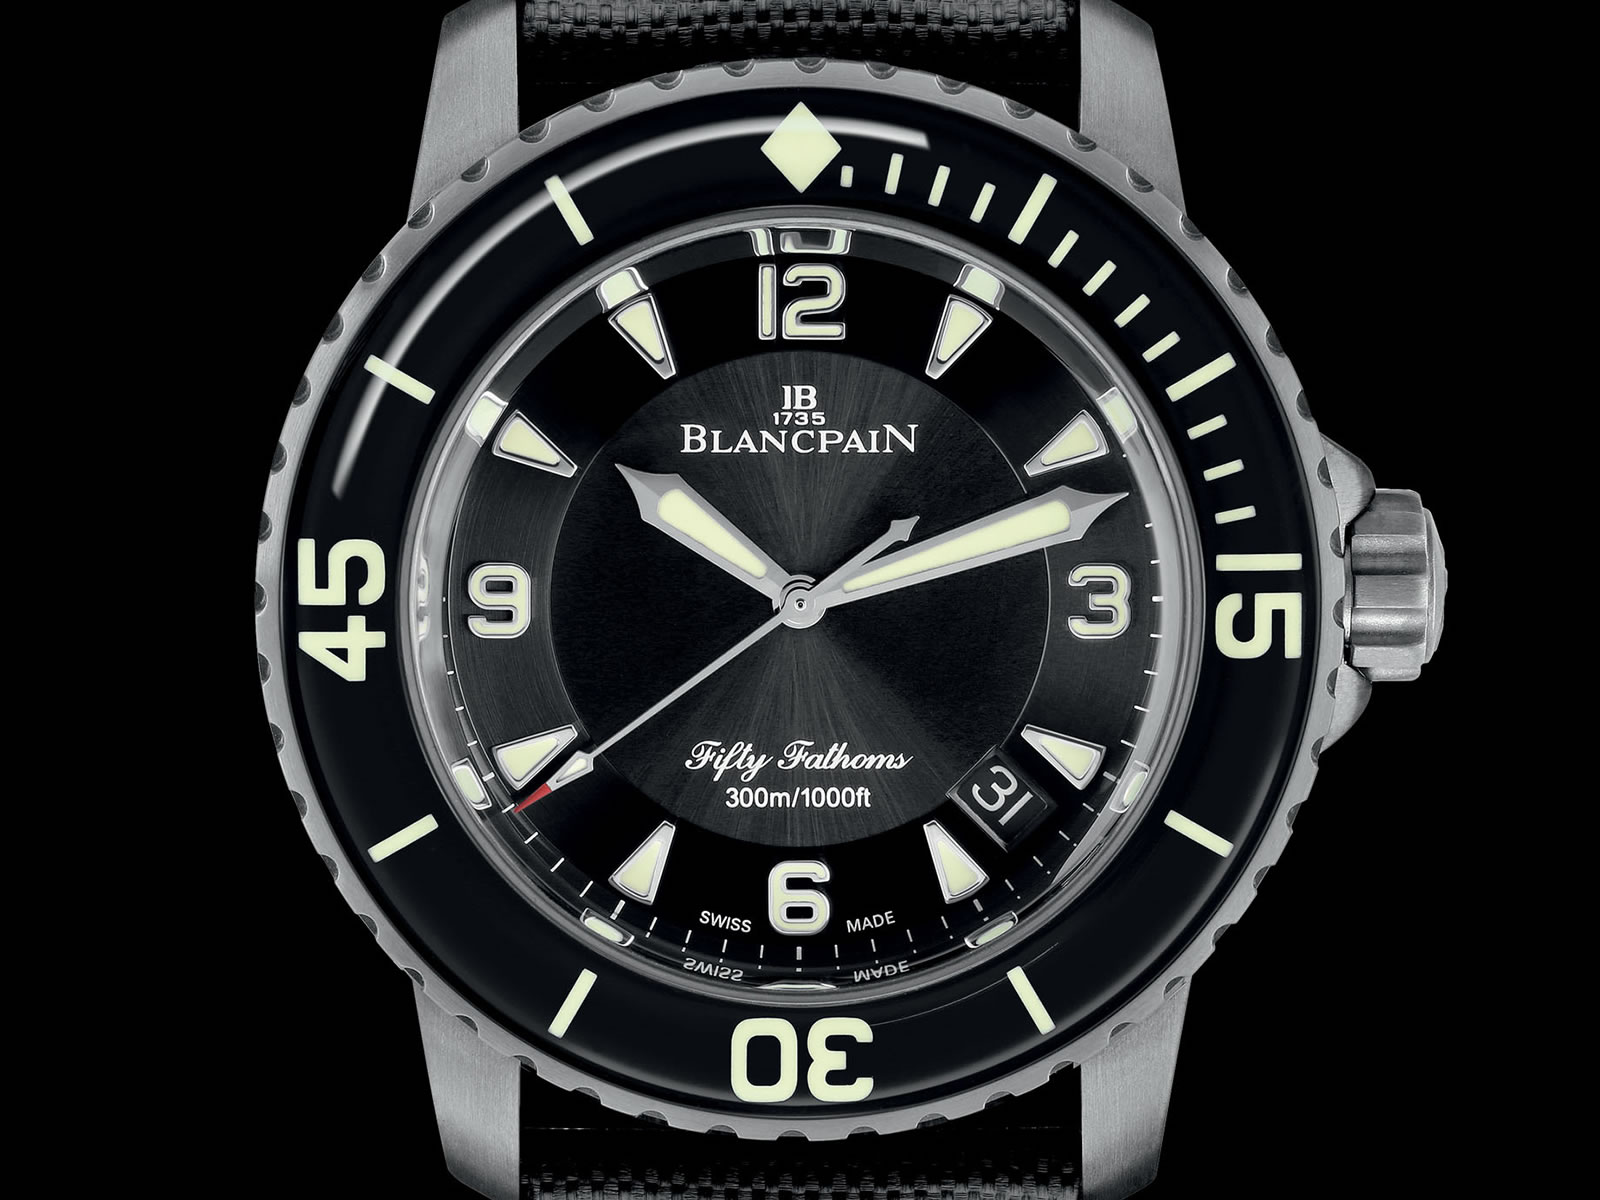 5015-12b30-52a-blancpain-fifty-fathoms-automatique-5015-titanium-3-.jpg